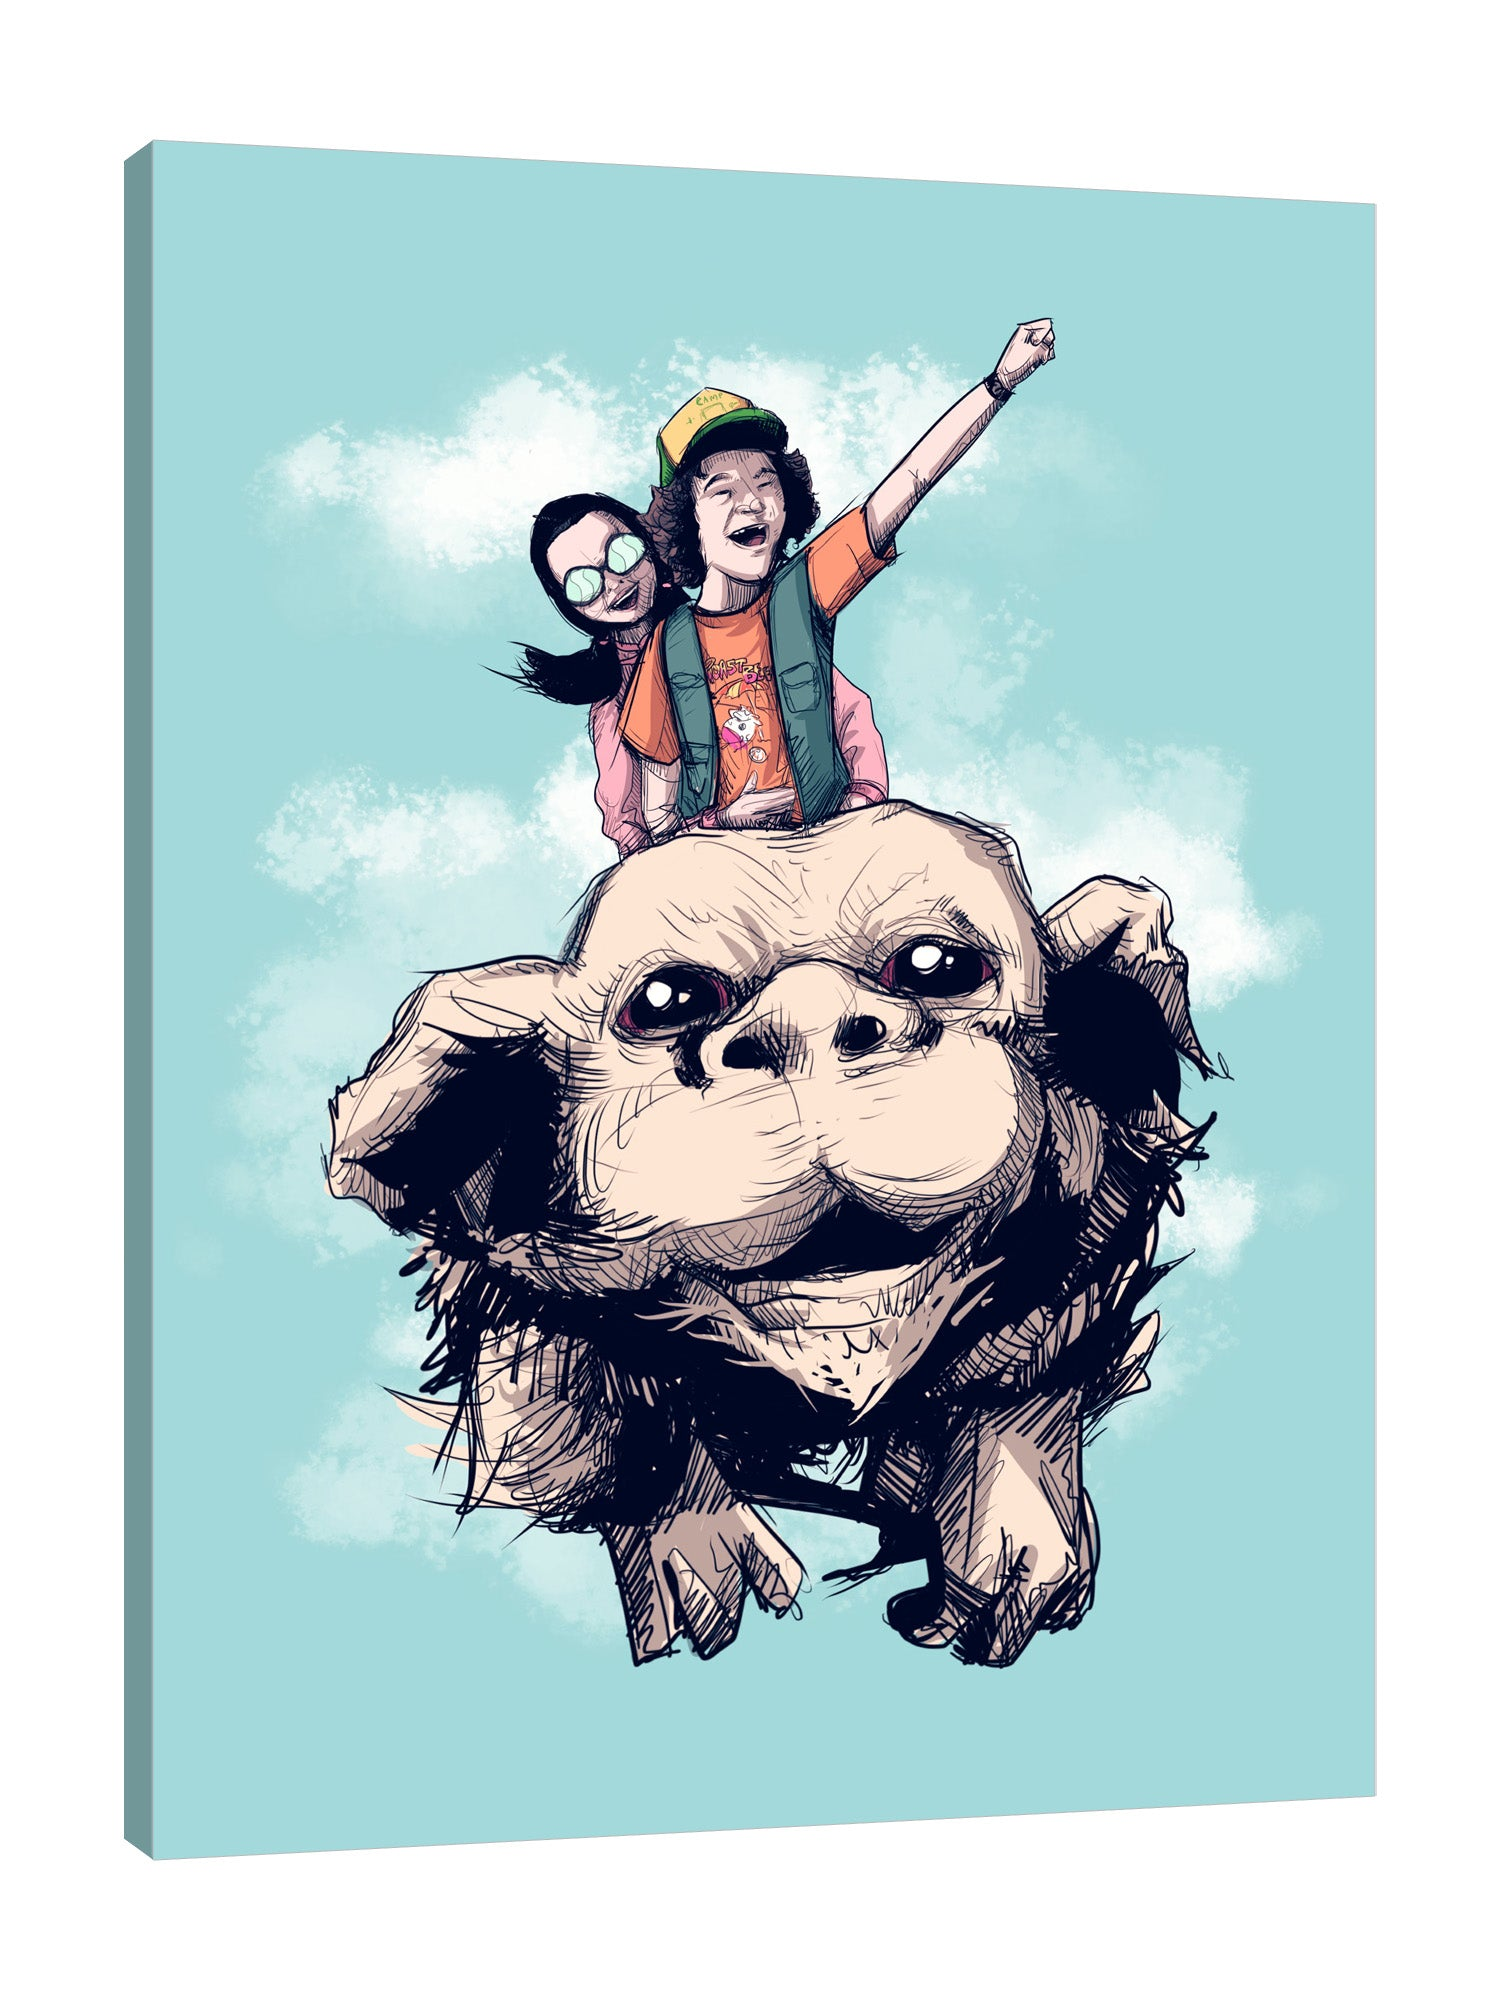 Ludwig-Van-Bacon,Vertical,3X4,Modern & Contemporary,Entertainments,Humor,People,Animals,Fantasy & Sci-Fi,never ending,neverending story,movies,movie,entertainment,humor,animals,animal,dog,dogs,flying dog,dustin,cinema,Blue,Red,Magenta Red,Black,Gray,Charcoal Gray,Sea Green,Lime Green